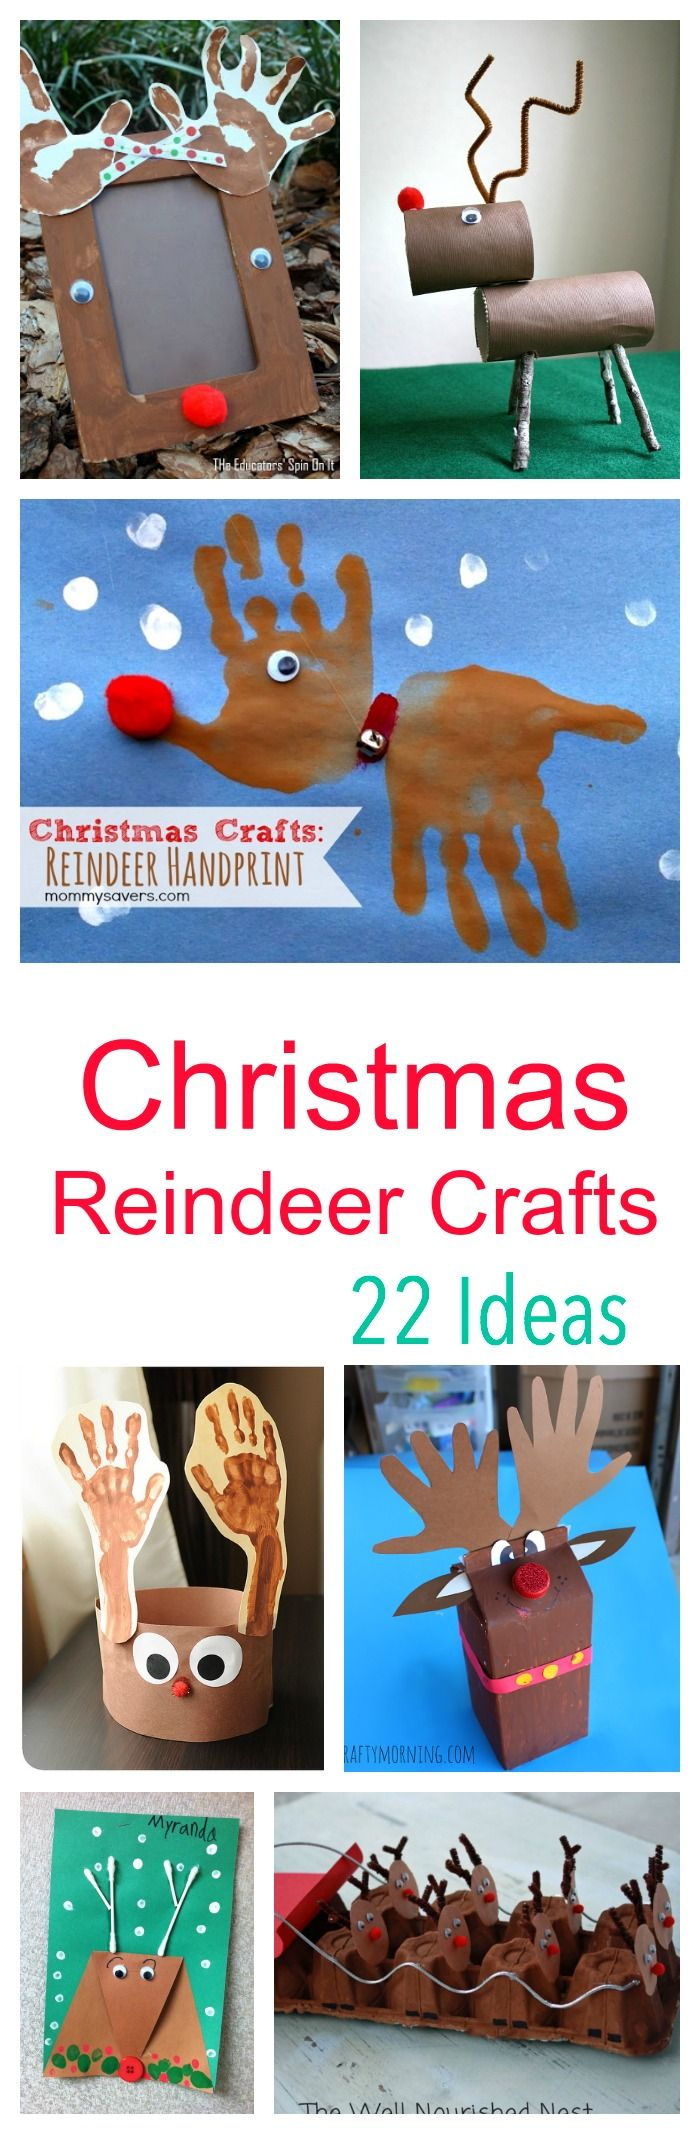 22 Dashing Reinder Craft Project Ideas for kids to make at Christmas Time